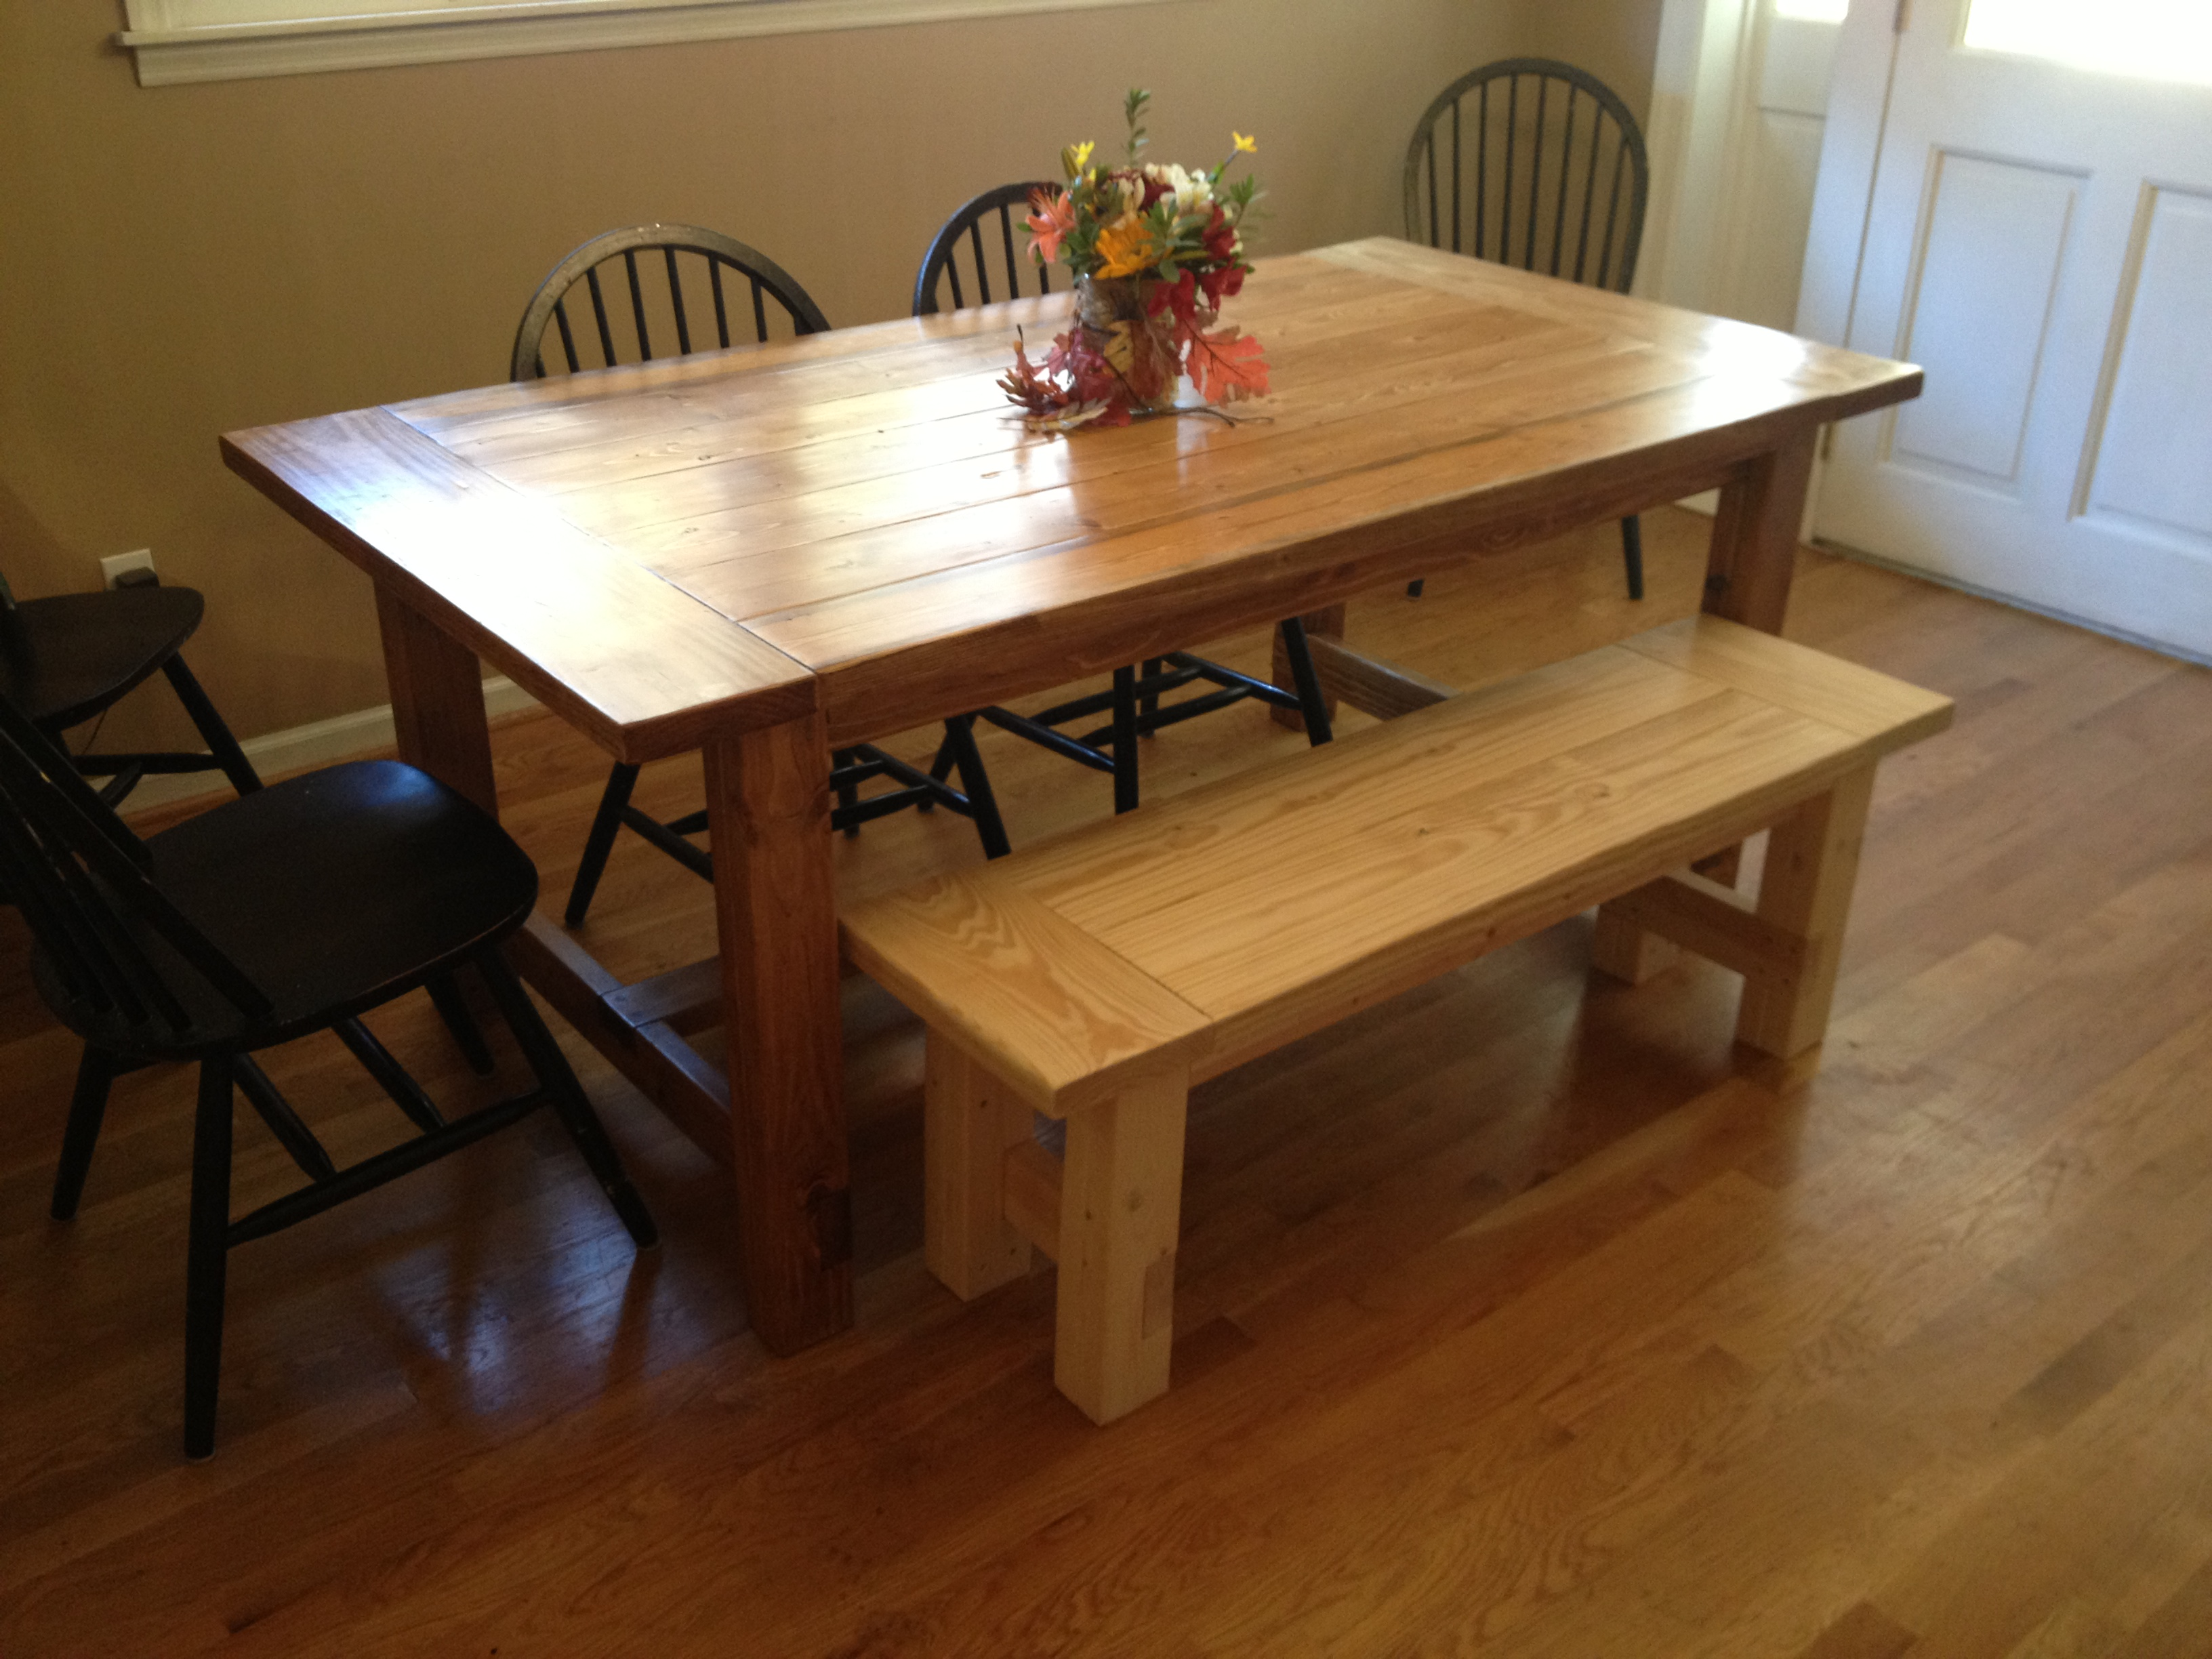 Farmhouse bench woodworking plans woodshop plans - My Rustic Farmhouse Table The Final Unfinished Product